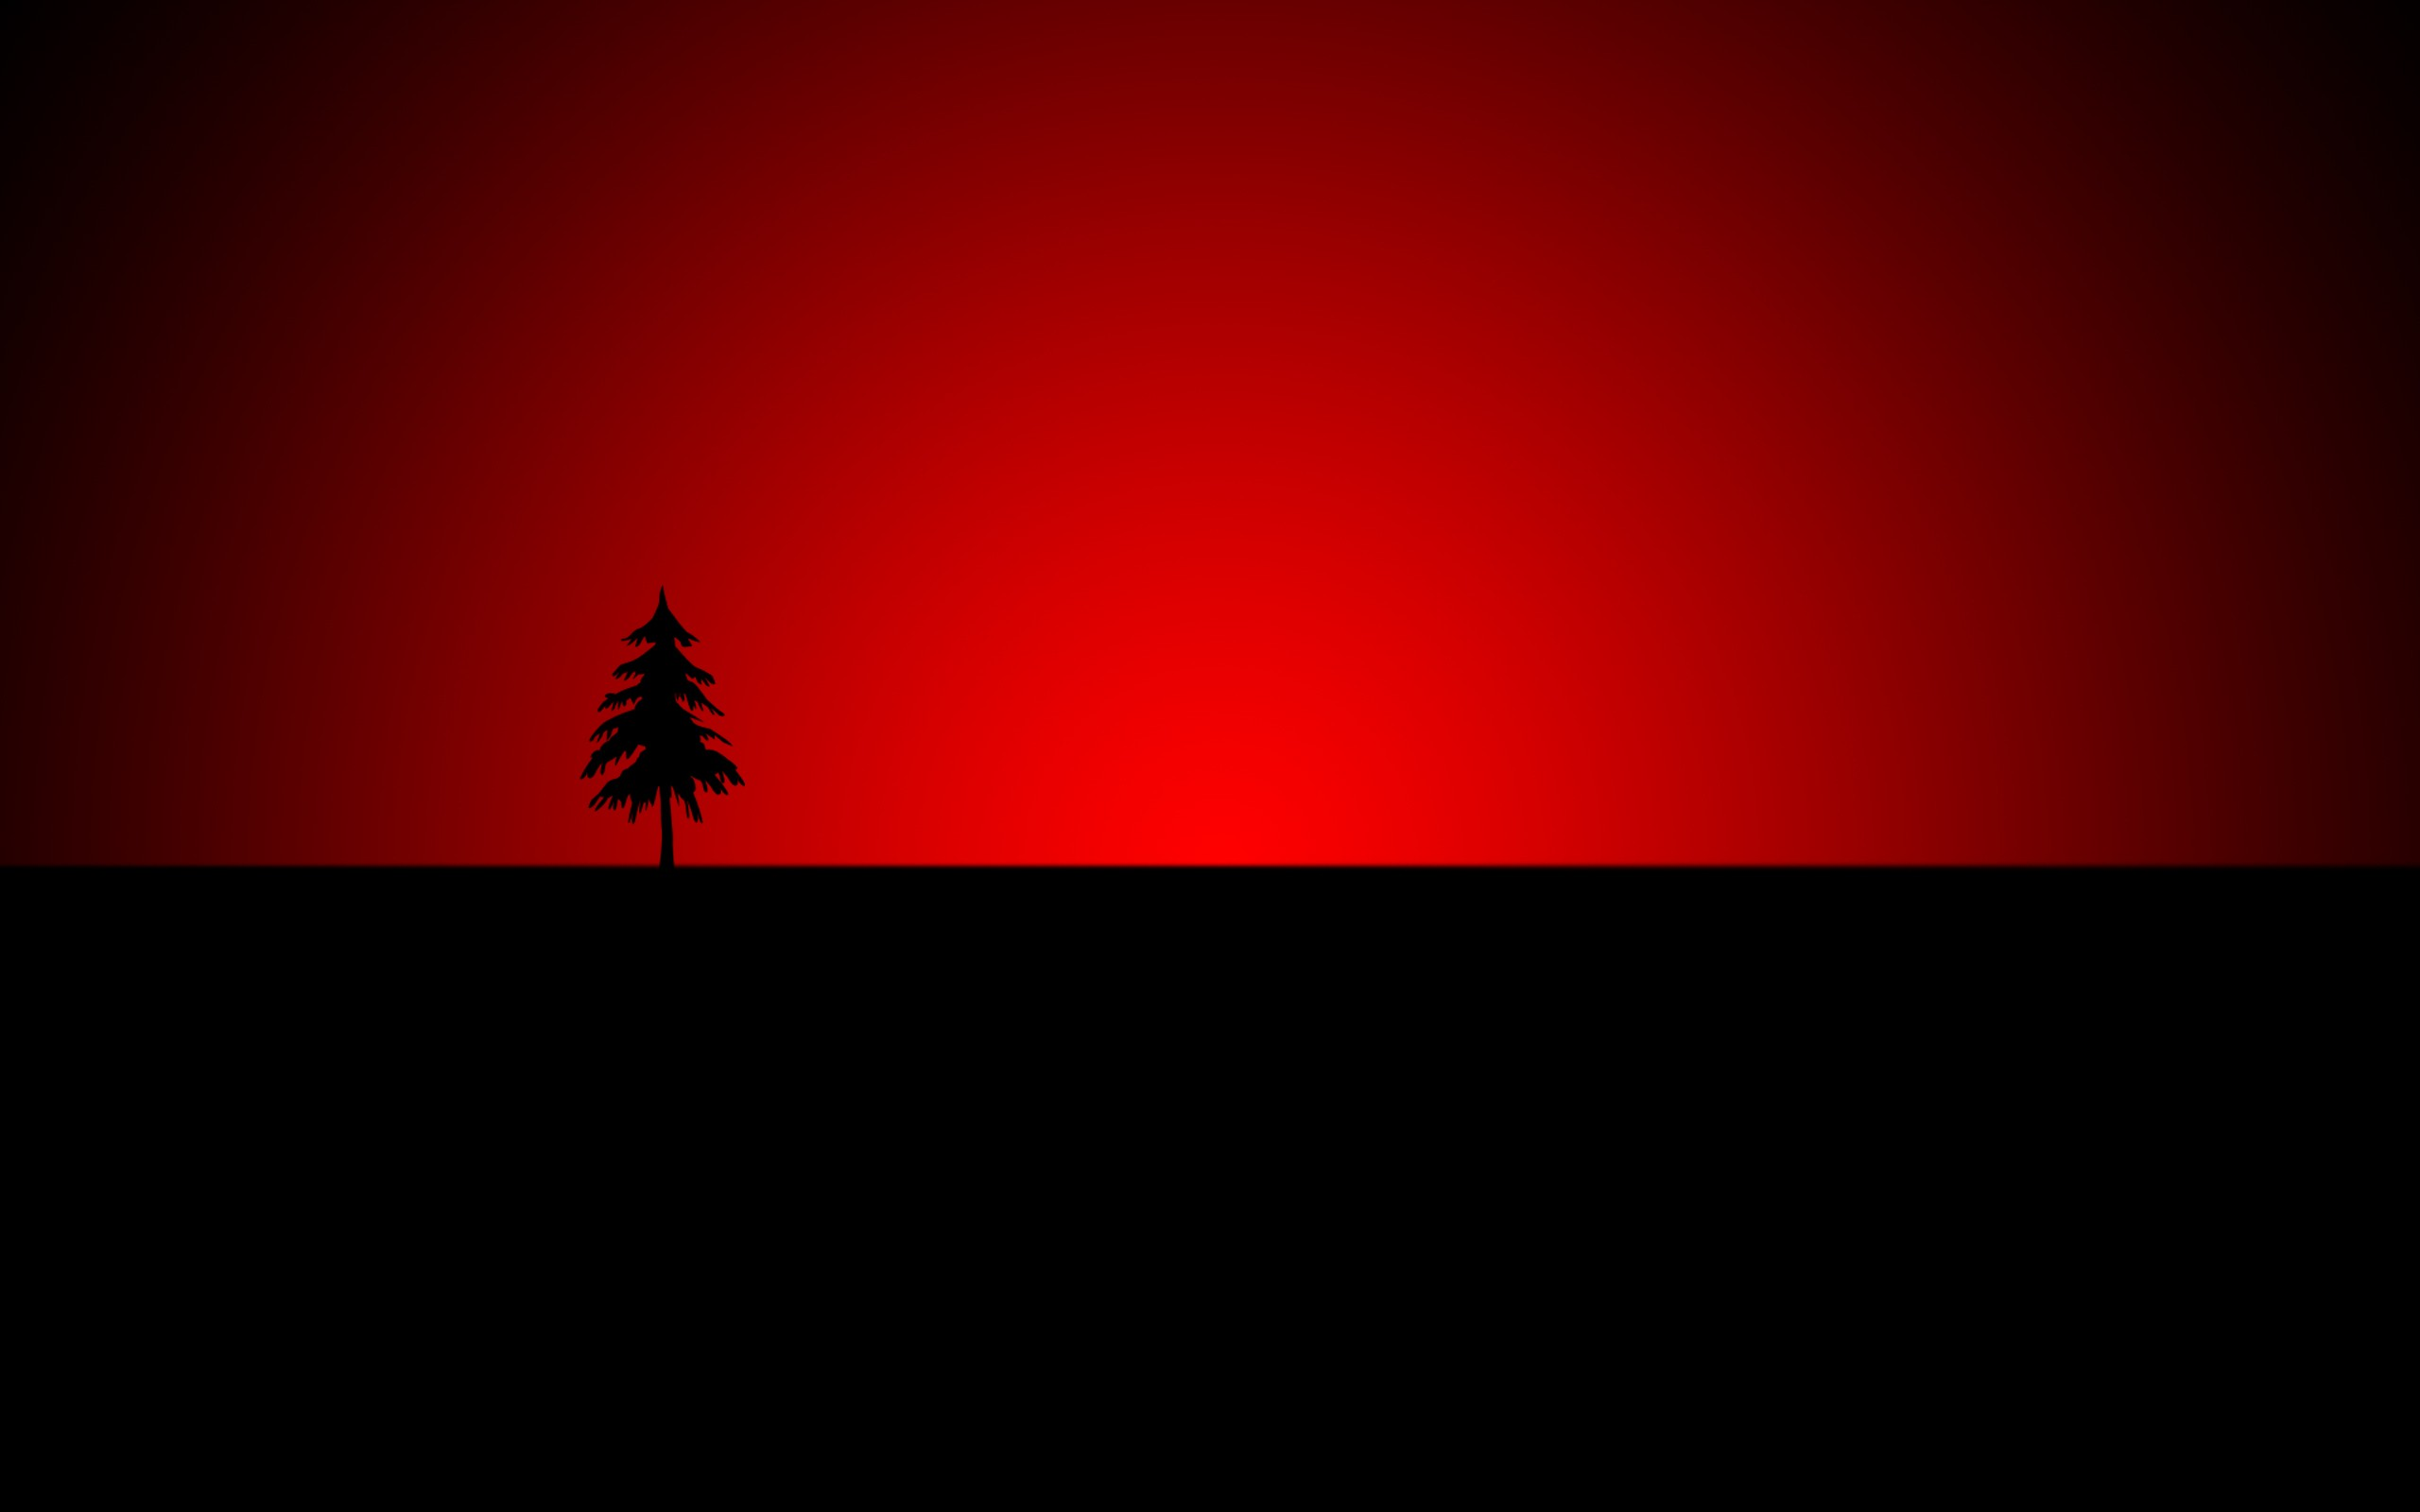 Red and black wallpaper download free cool backgrounds - Black wallpaper download ...